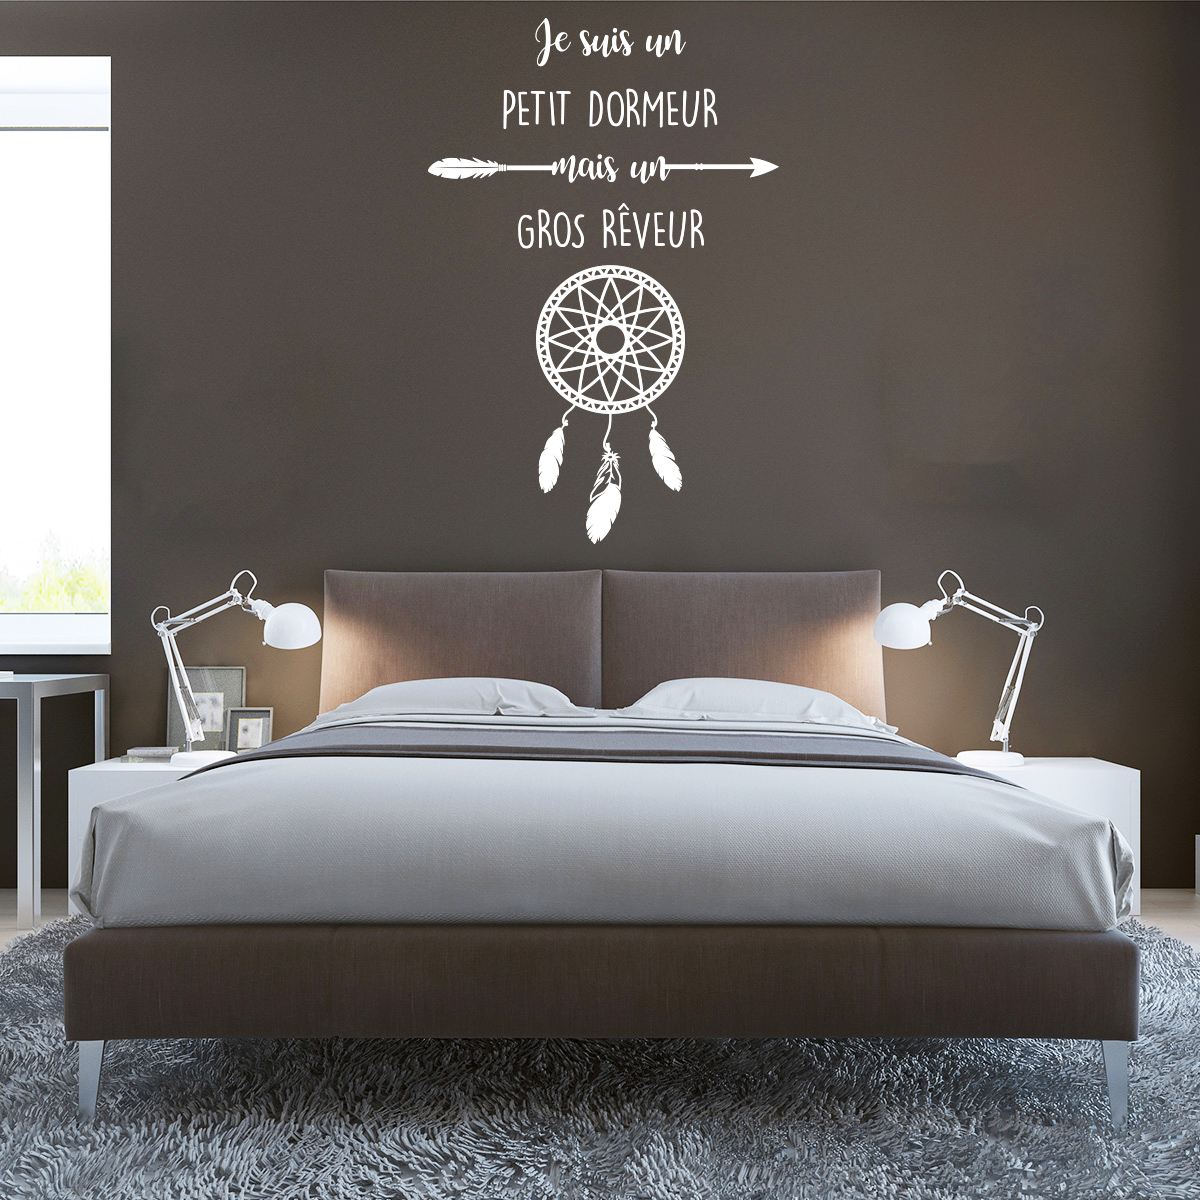 Sticker citation je suis un petit dormeur attrape r ve stickers citations fran ais - Stickers muraux citations chambre ...